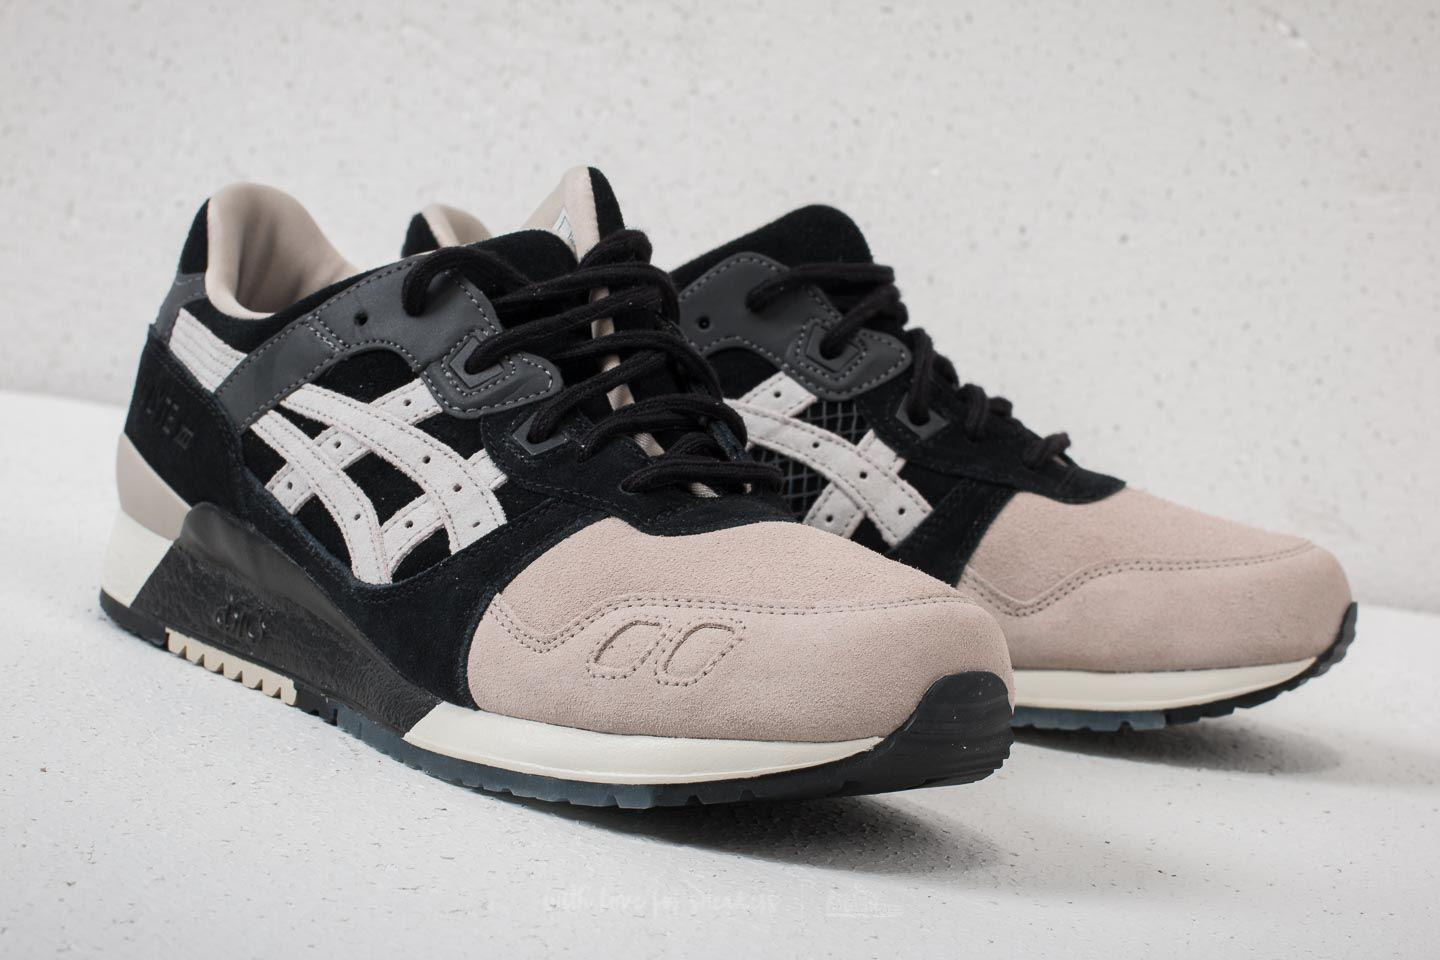 Lyst Tiger Asics Gel Tiger X Kicks Lab Froid Lyte Lab Iii Noir/ Gris Froid 313d754 - wartrol.website